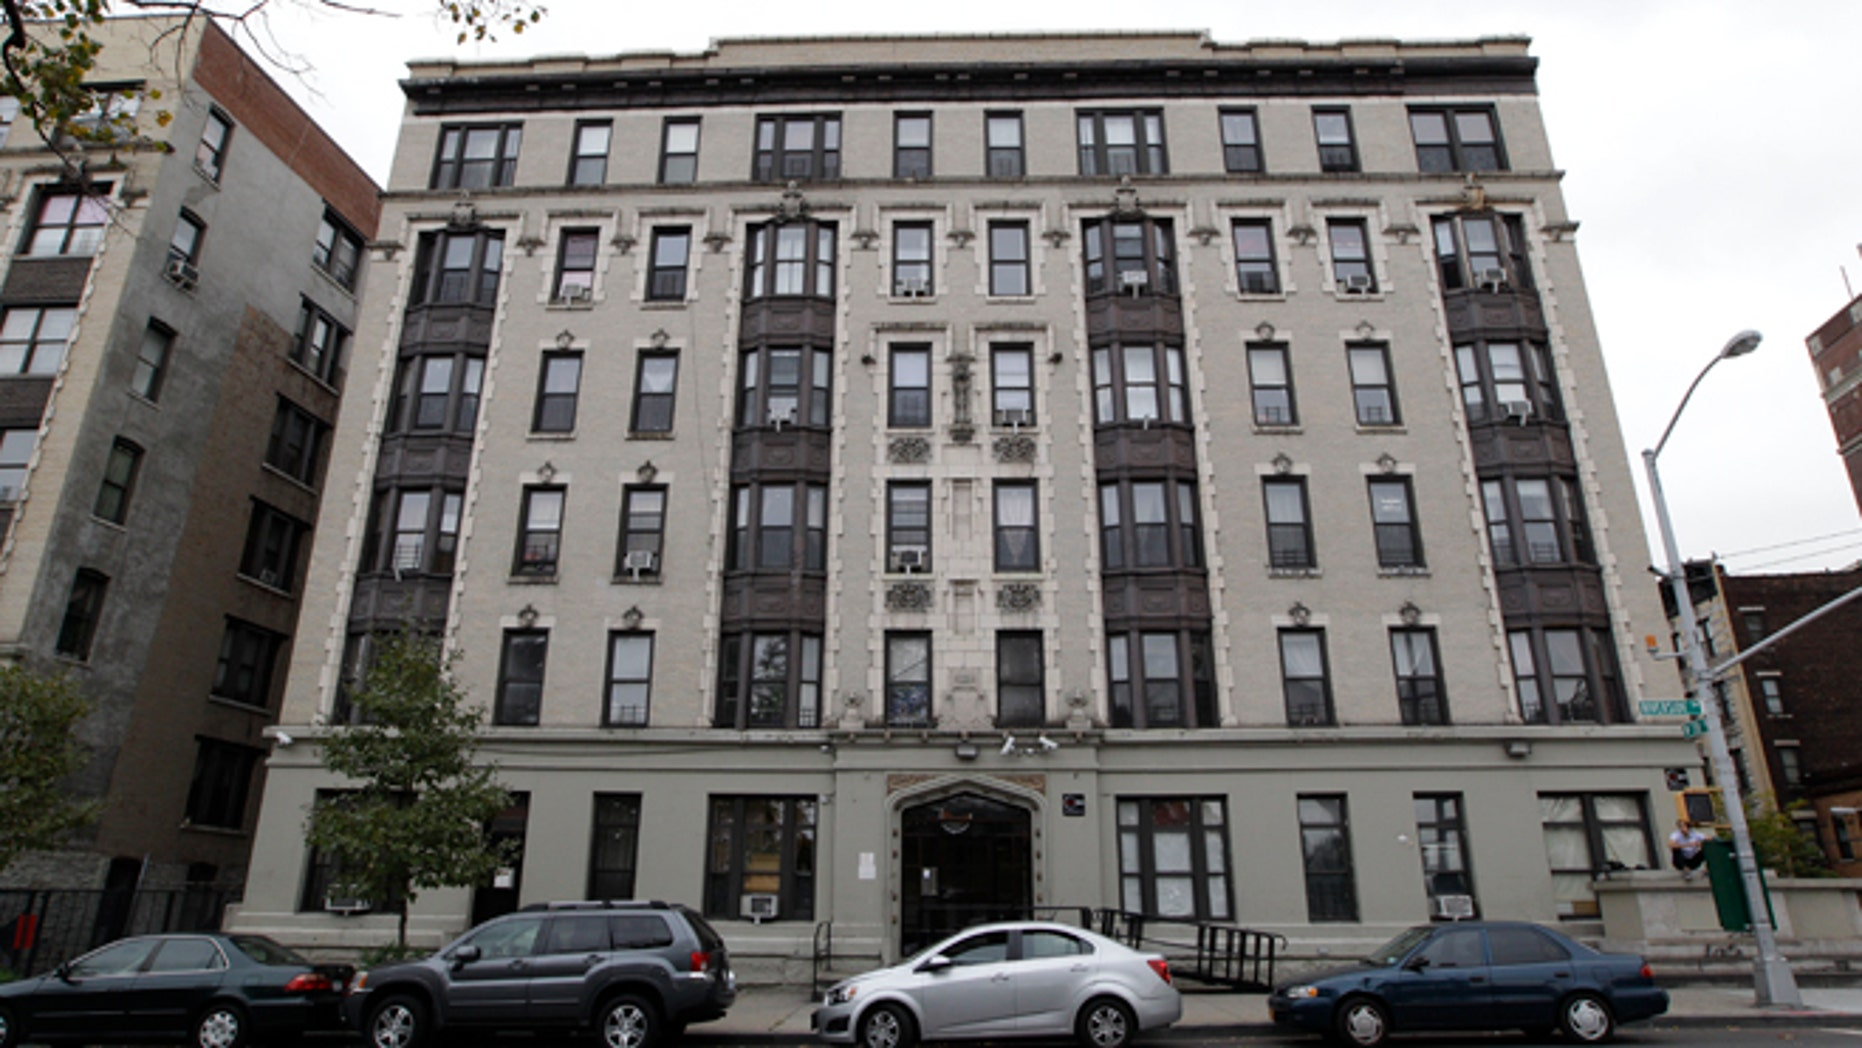 Oct. 26, 2012: The building where Yoselyn Ortega lives is photographed in New York.